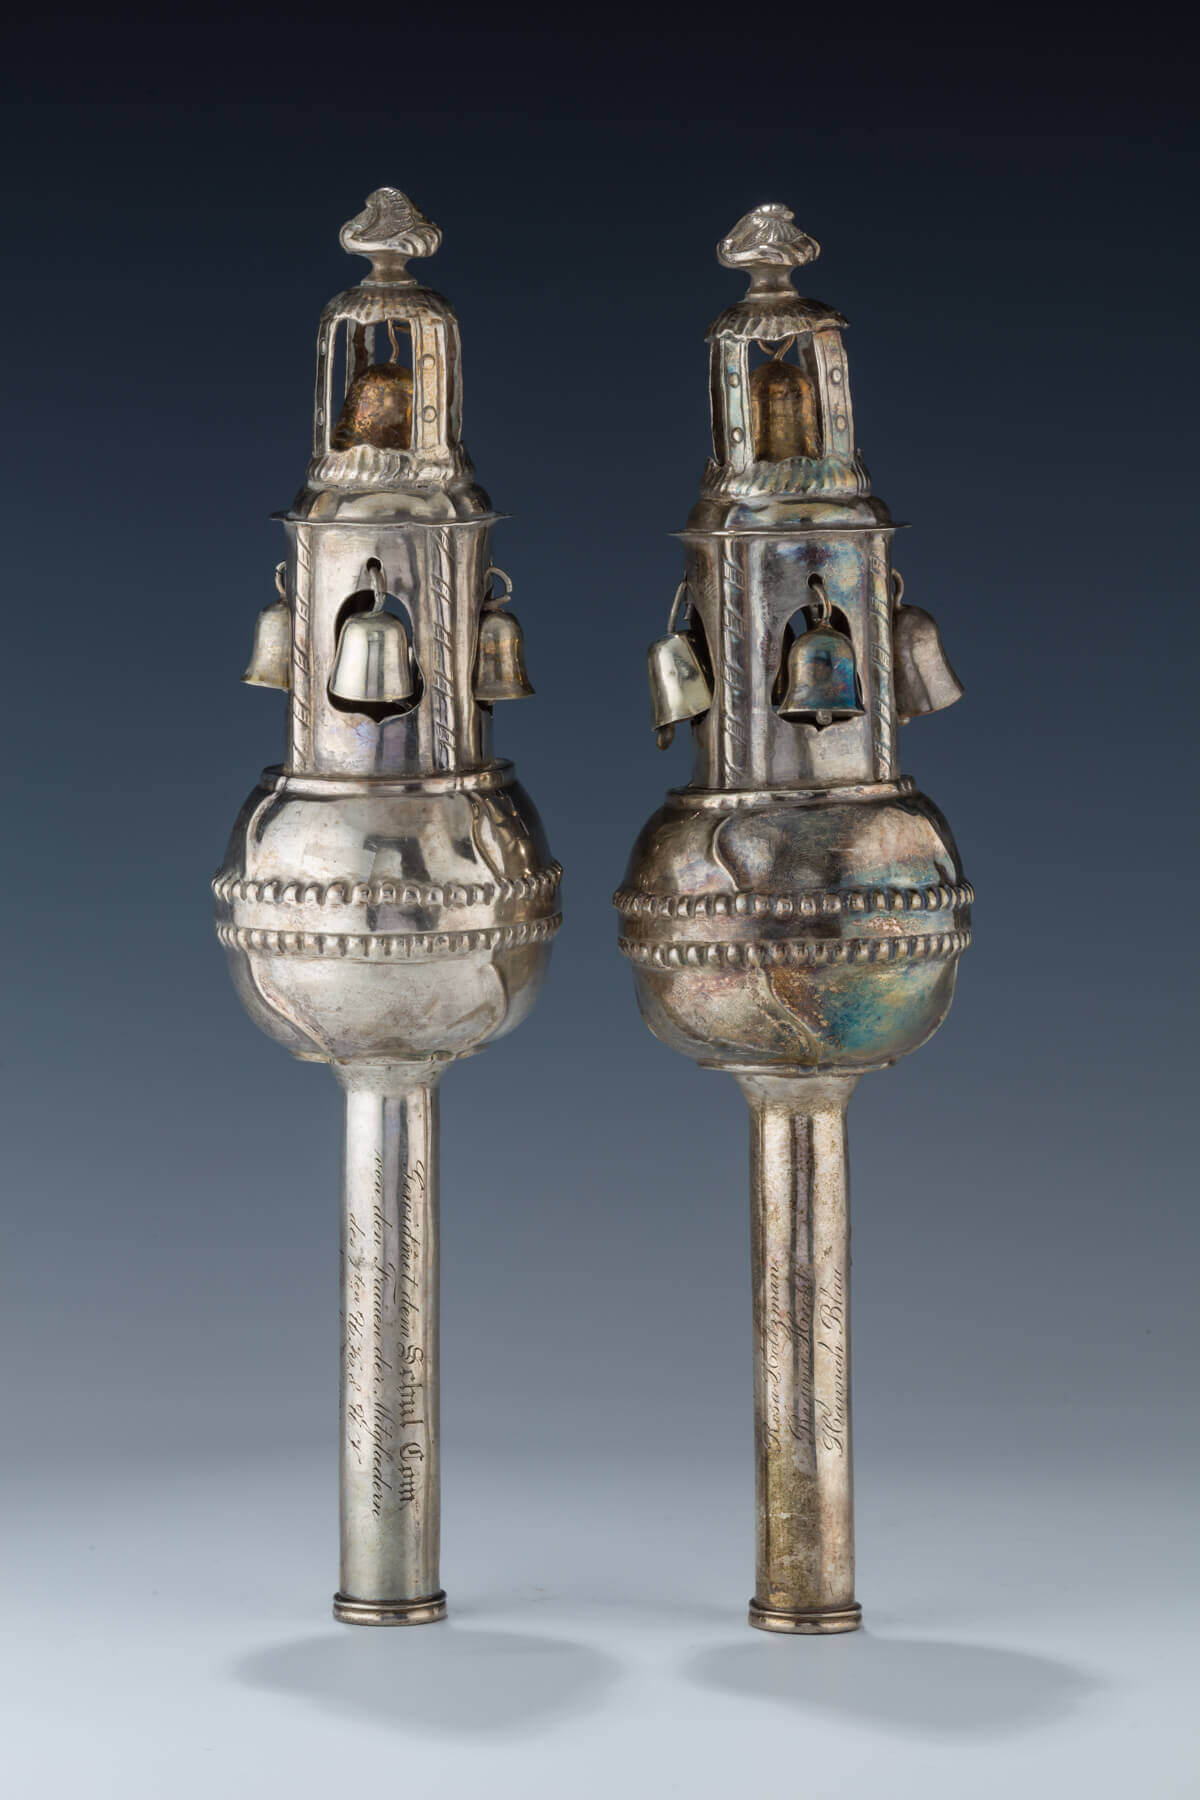 130. A RARE PAIR OF SILVER TORAH FINIALS